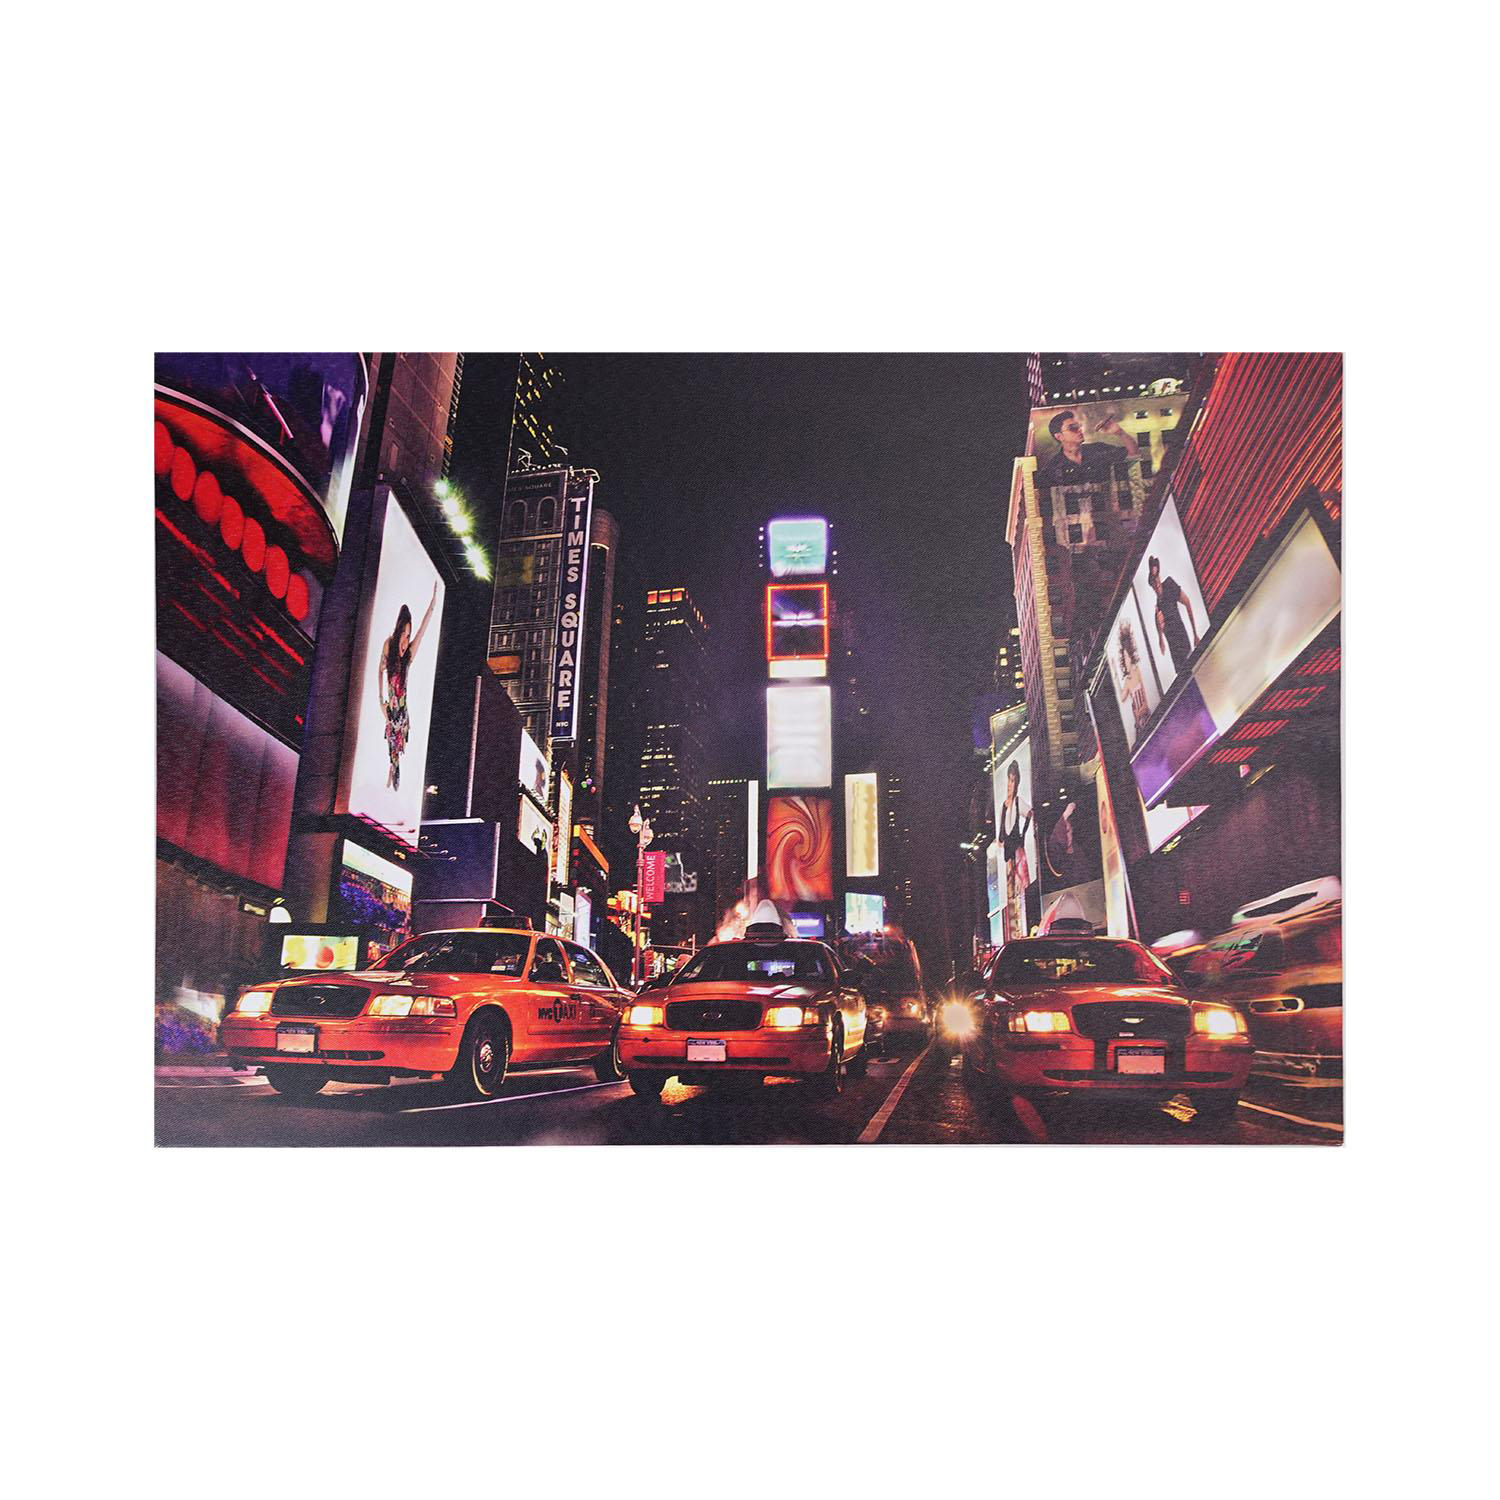 LED Light-Up NYC Times Square Broadway Taxi Cabs Canvas Wall Art